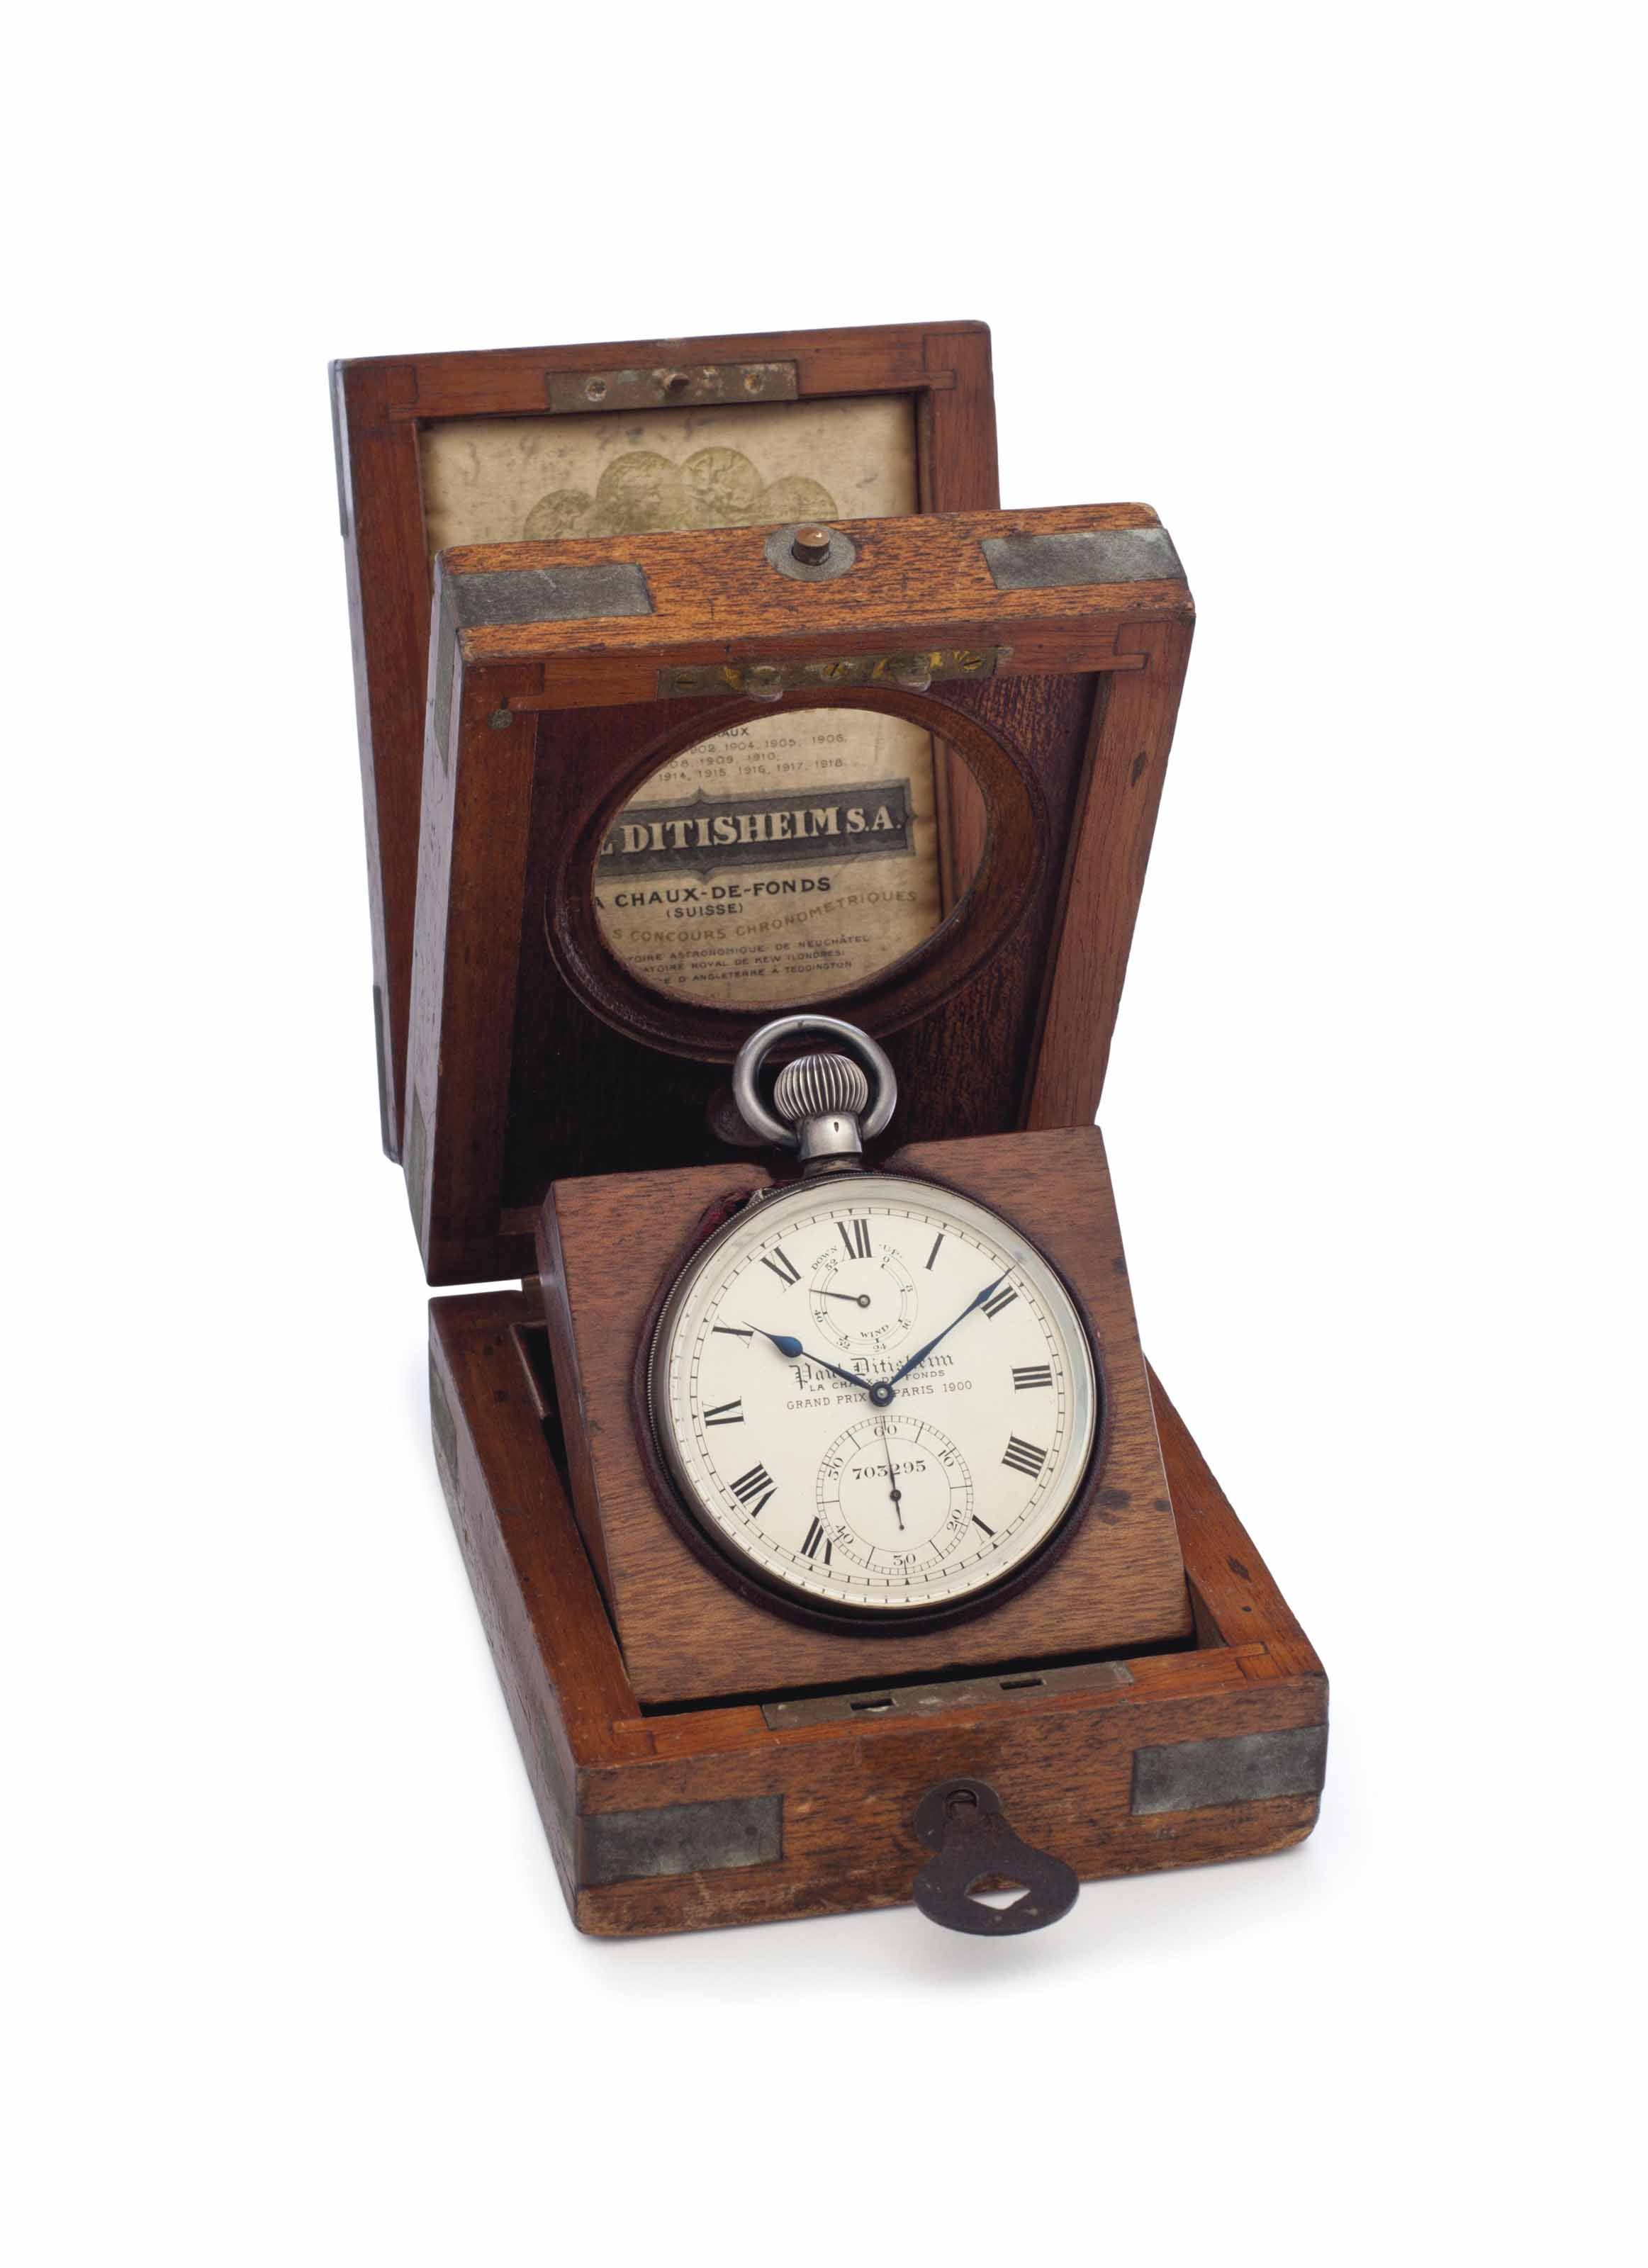 Paul Ditisheim. A Rare Silver Openface Keyless Lever Deck Watch with Guillaume Balance, Up and Down Indication and Wooden Presentation Box